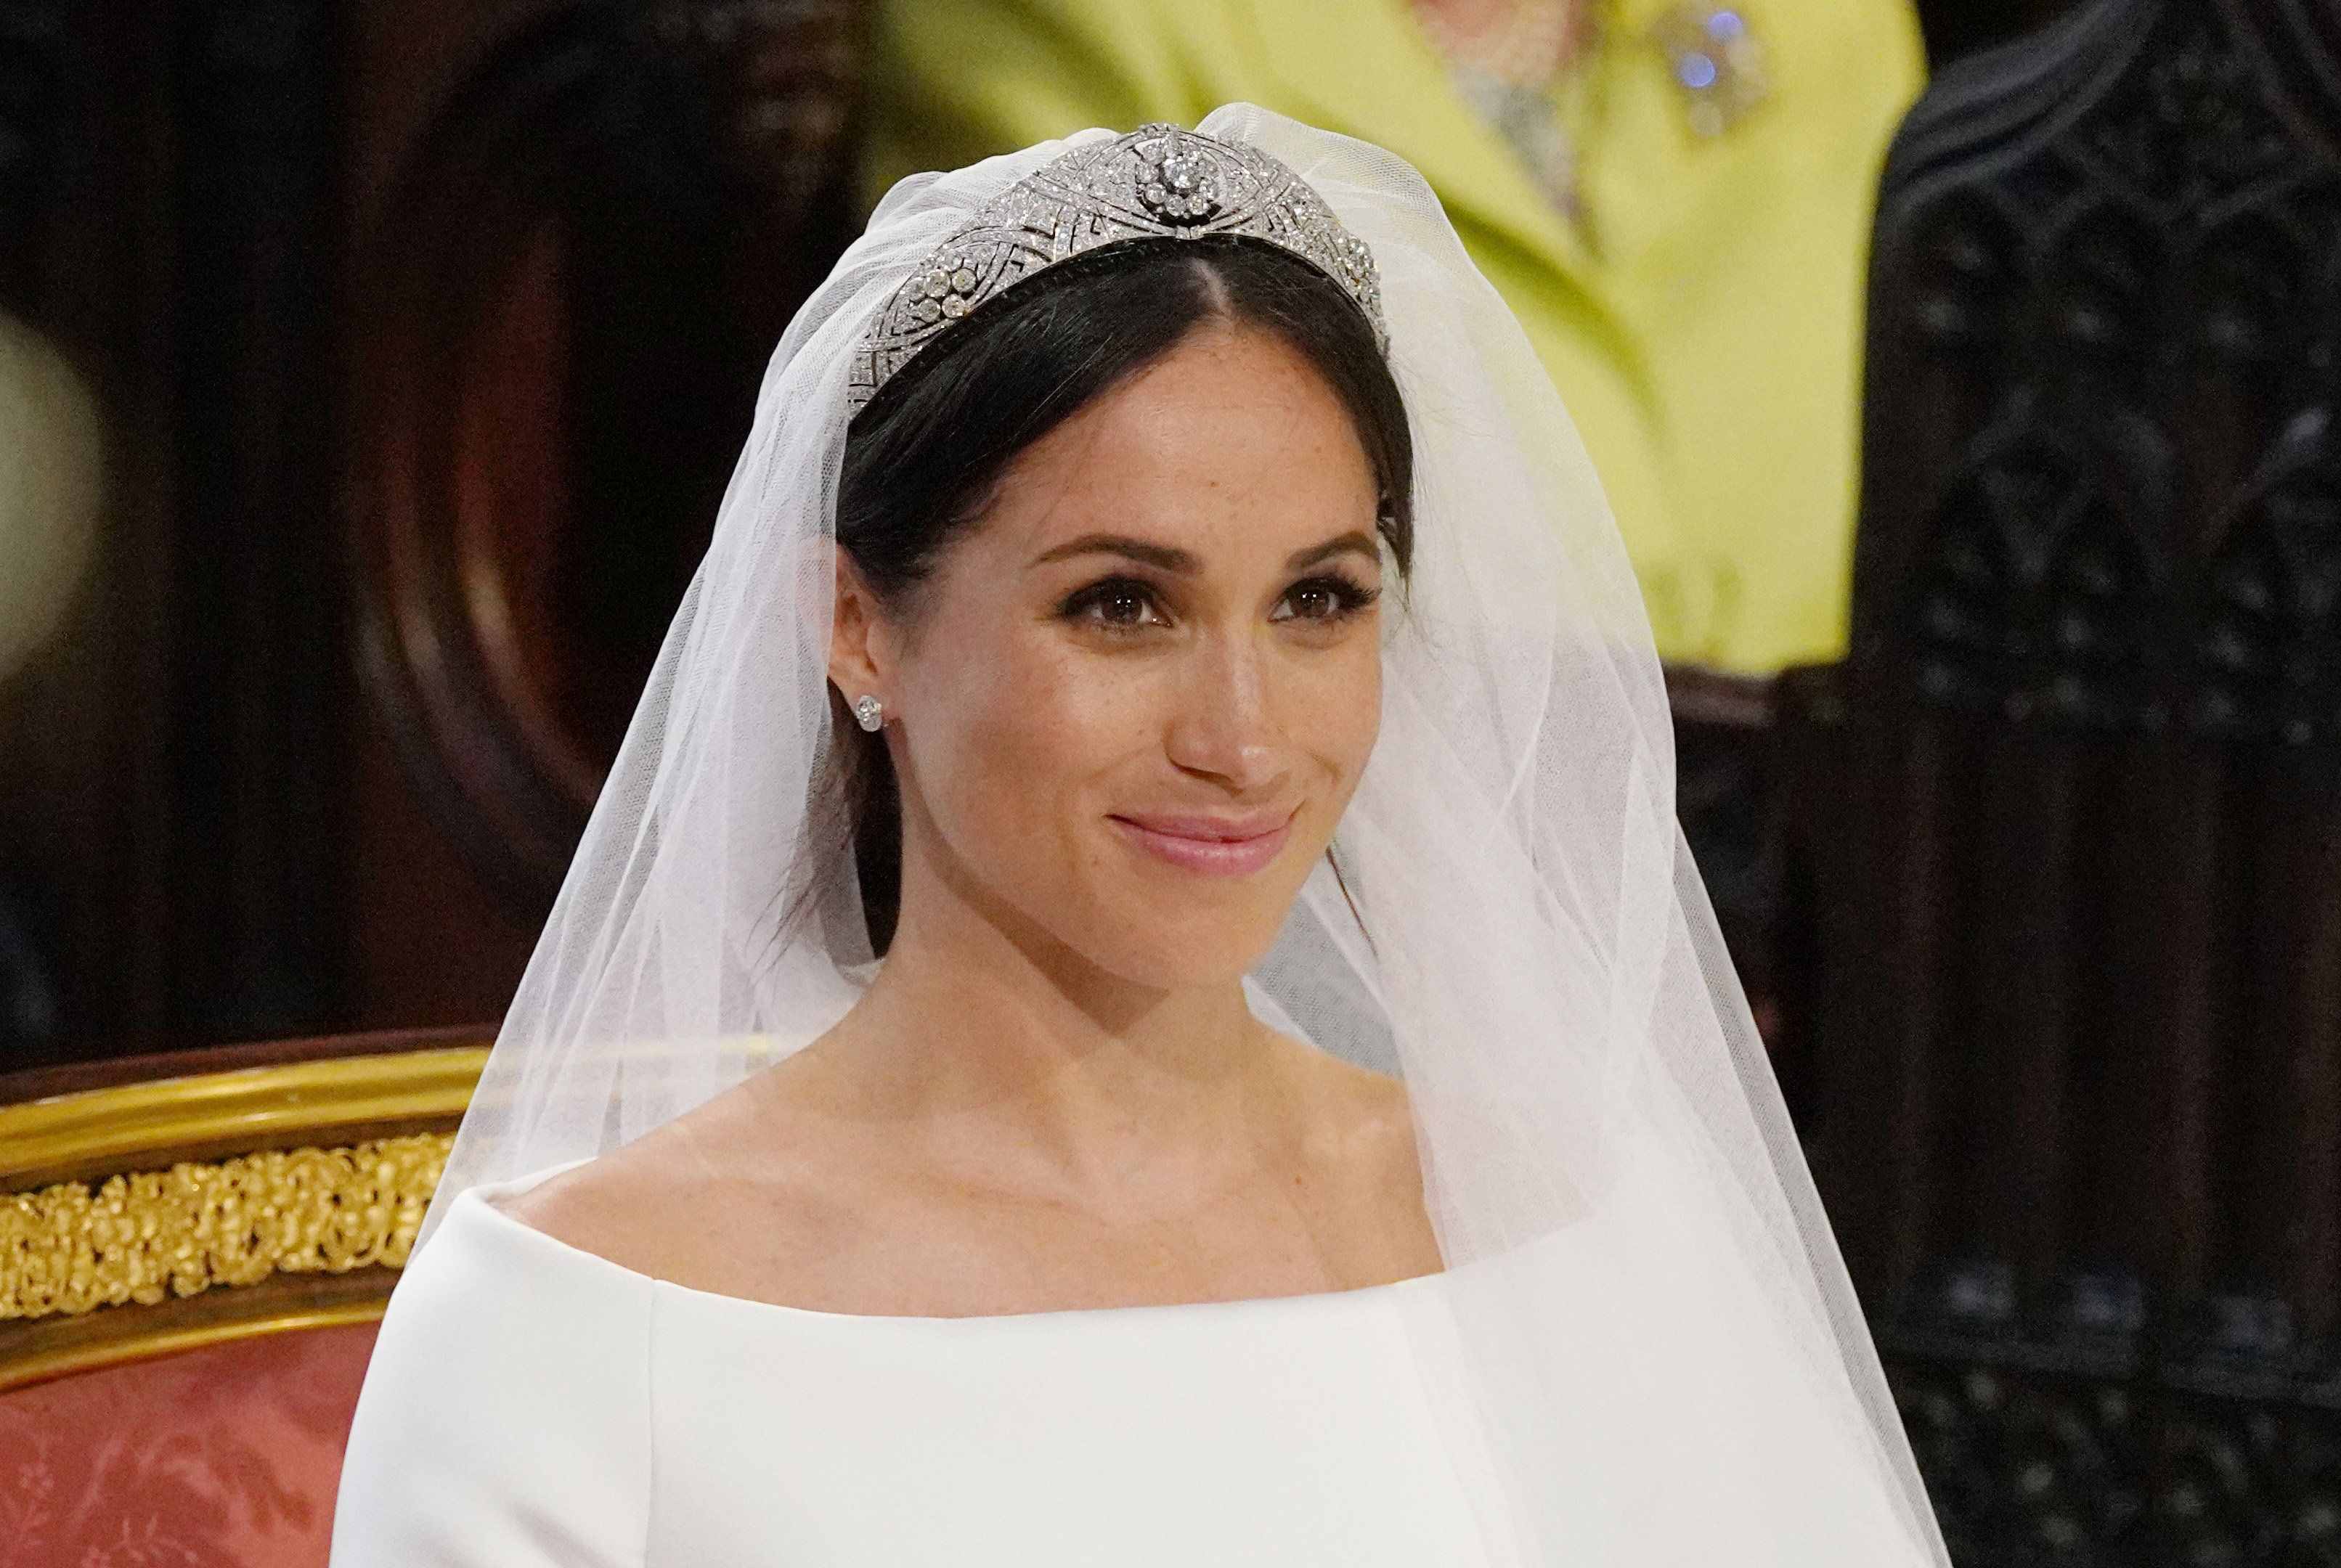 Here's Your First Look At Meghan Markle's Wedding Dress